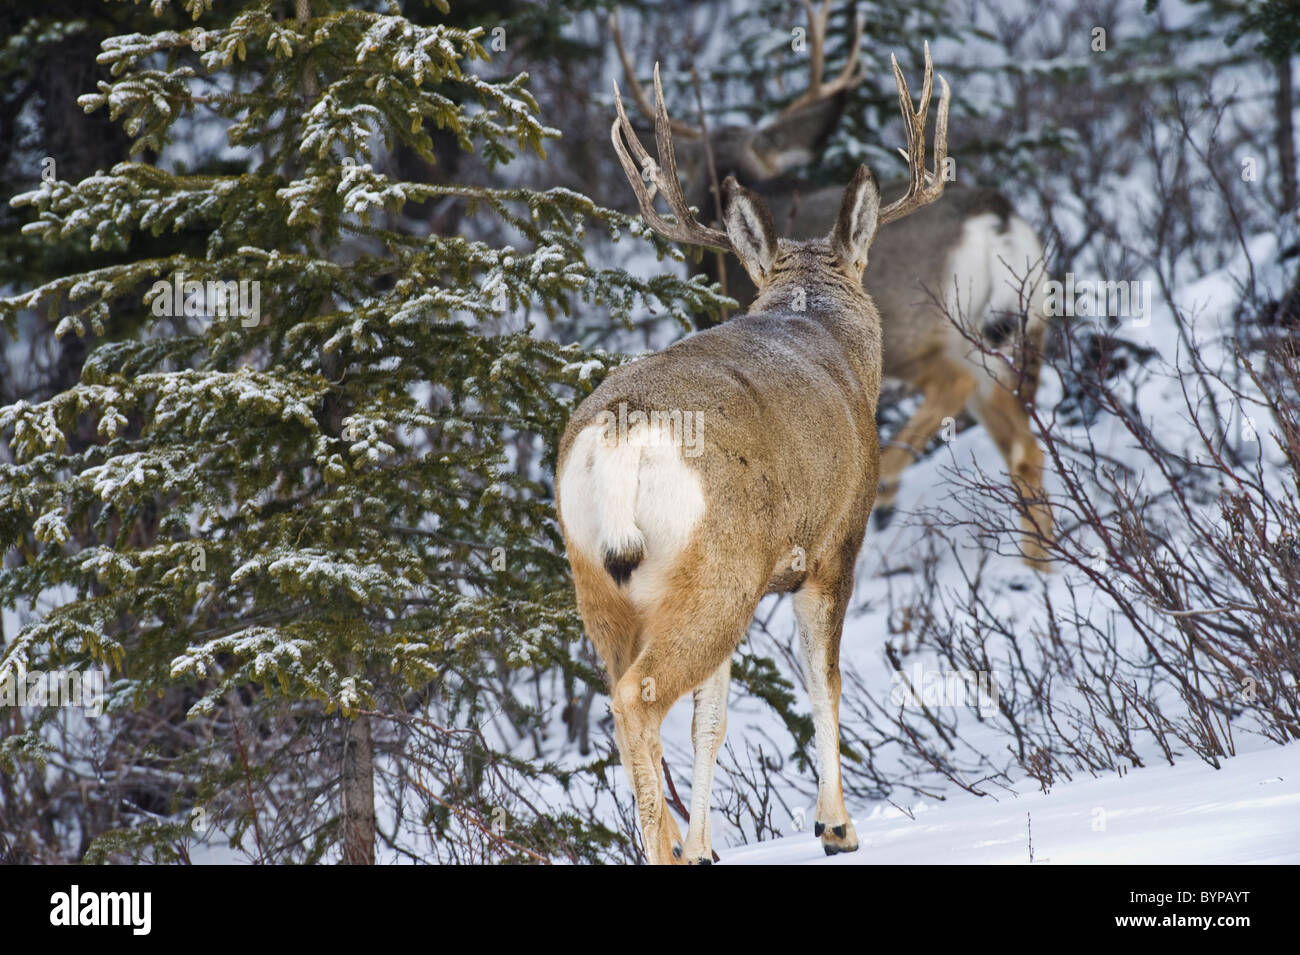 Two adult mule deer bucks walking away through the brush and snow. - Stock Image